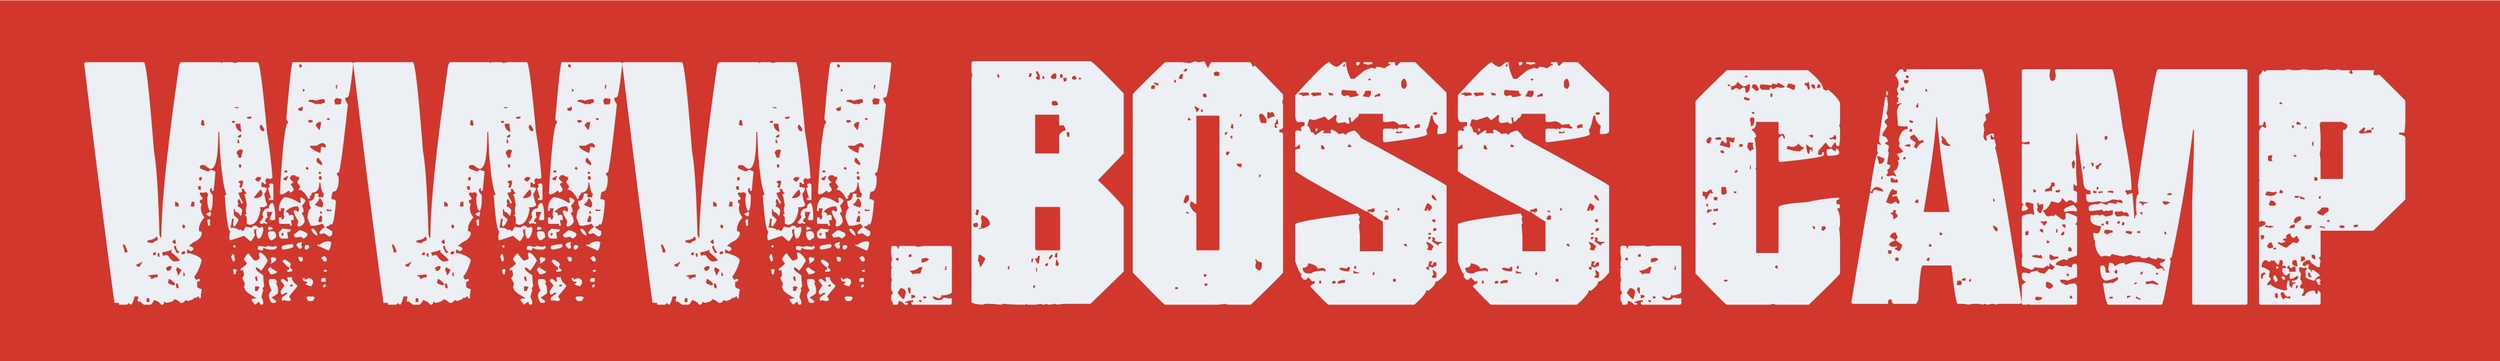 Find out how to improve employee performance in just one hour a week at www.boss.camp jpeg